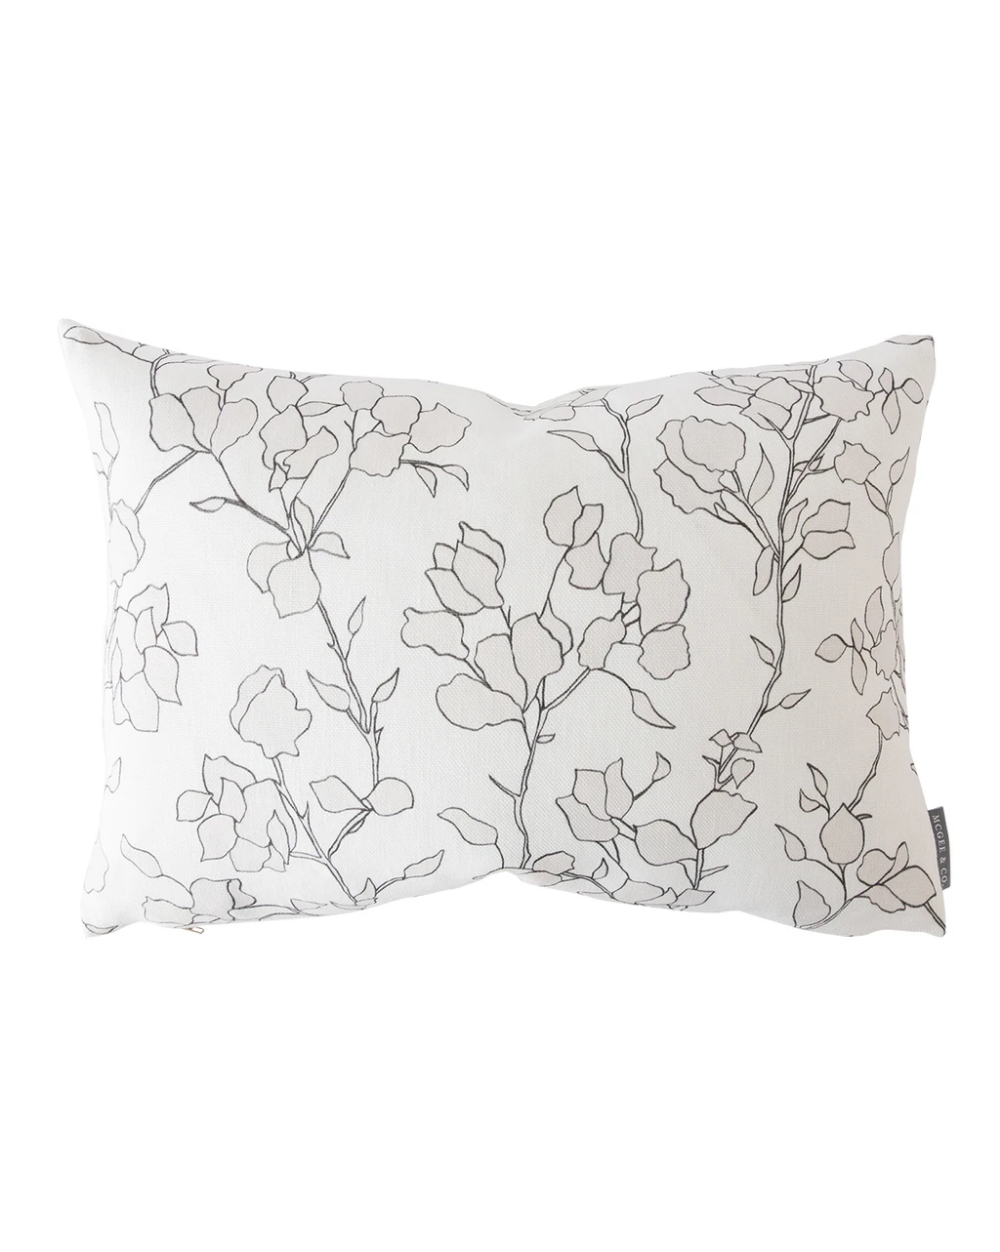 The Blair Sketched Floral Captures The Best Of Nature S Artful Form While A Quiet Palette Stays True To Its Si In 2021 Floral Pillow Cover Floral Pillows Pillow Covers